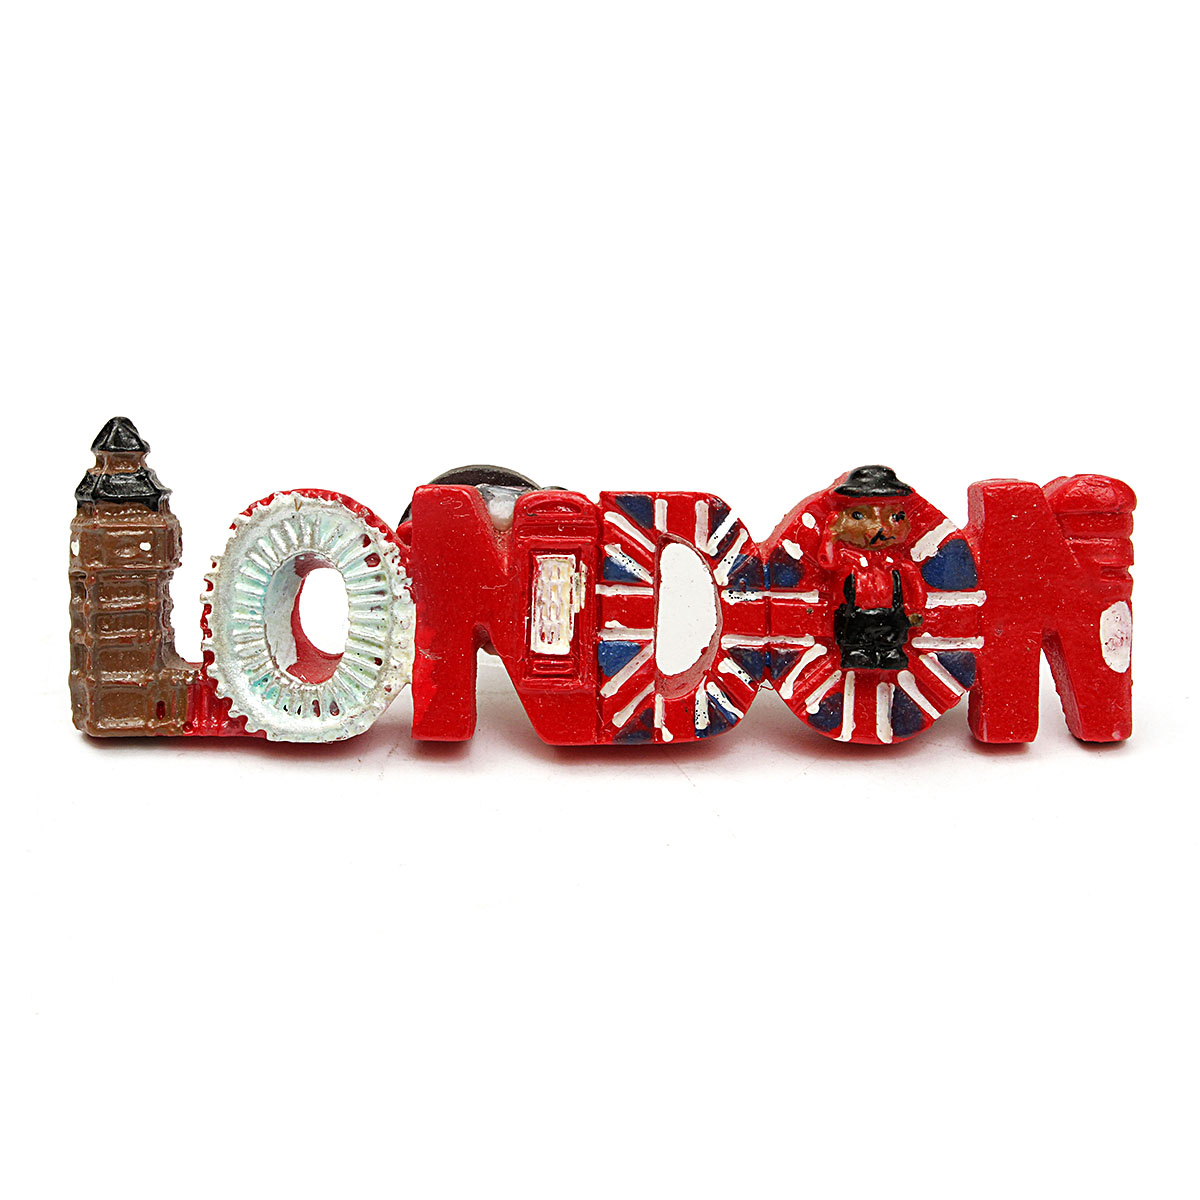 3D Resin Tourist Travel Souvenir Craft Fridge Magnet United Kingdom UK London - Photo: 2